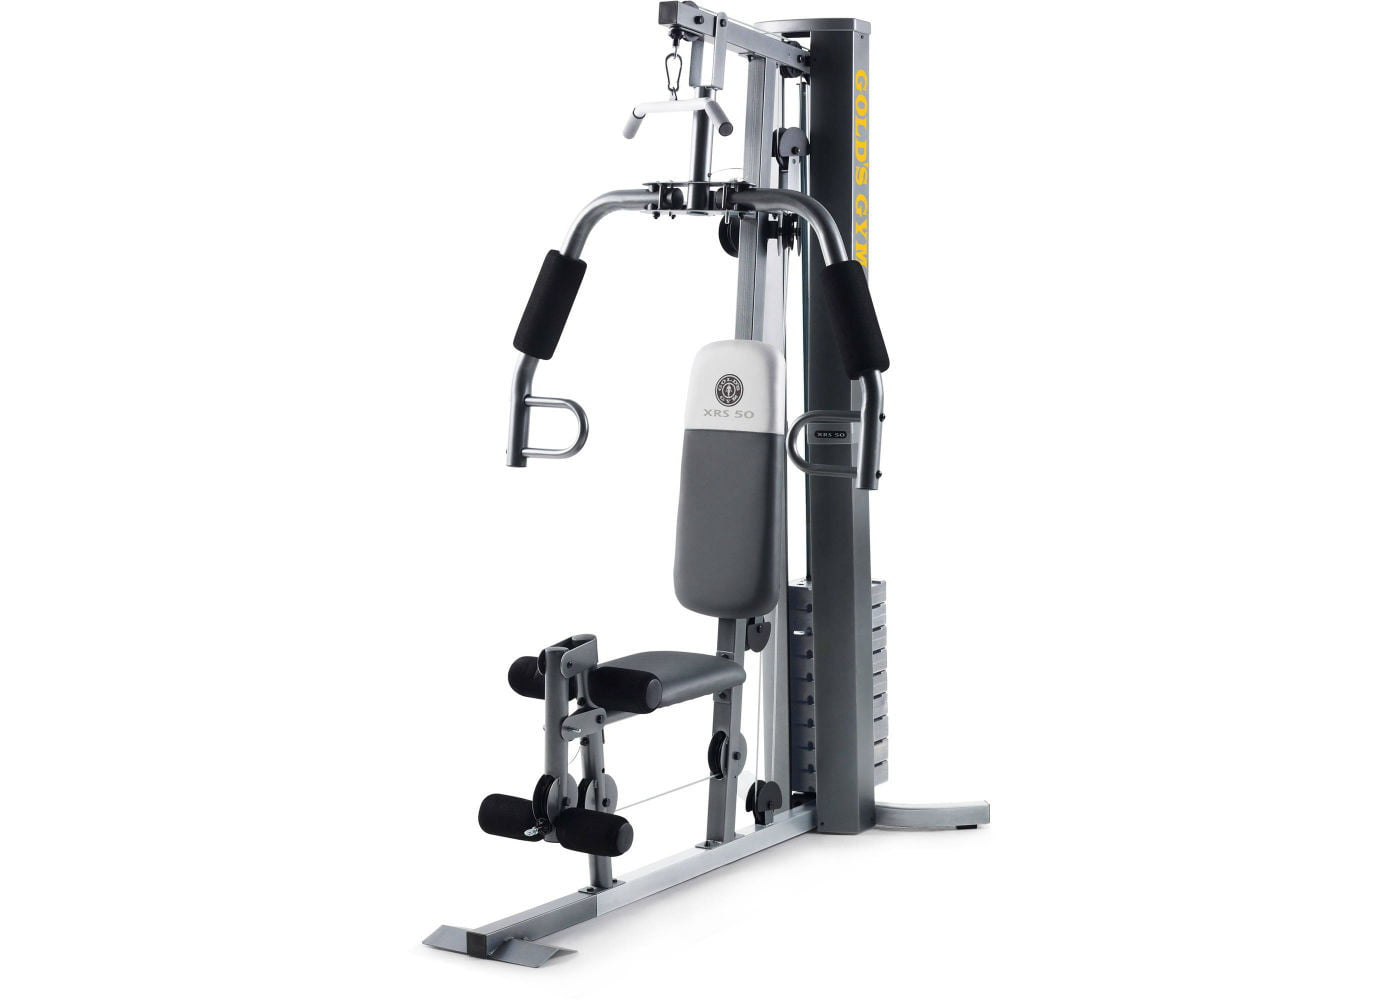 Start your home gym and save over on this fitness machine